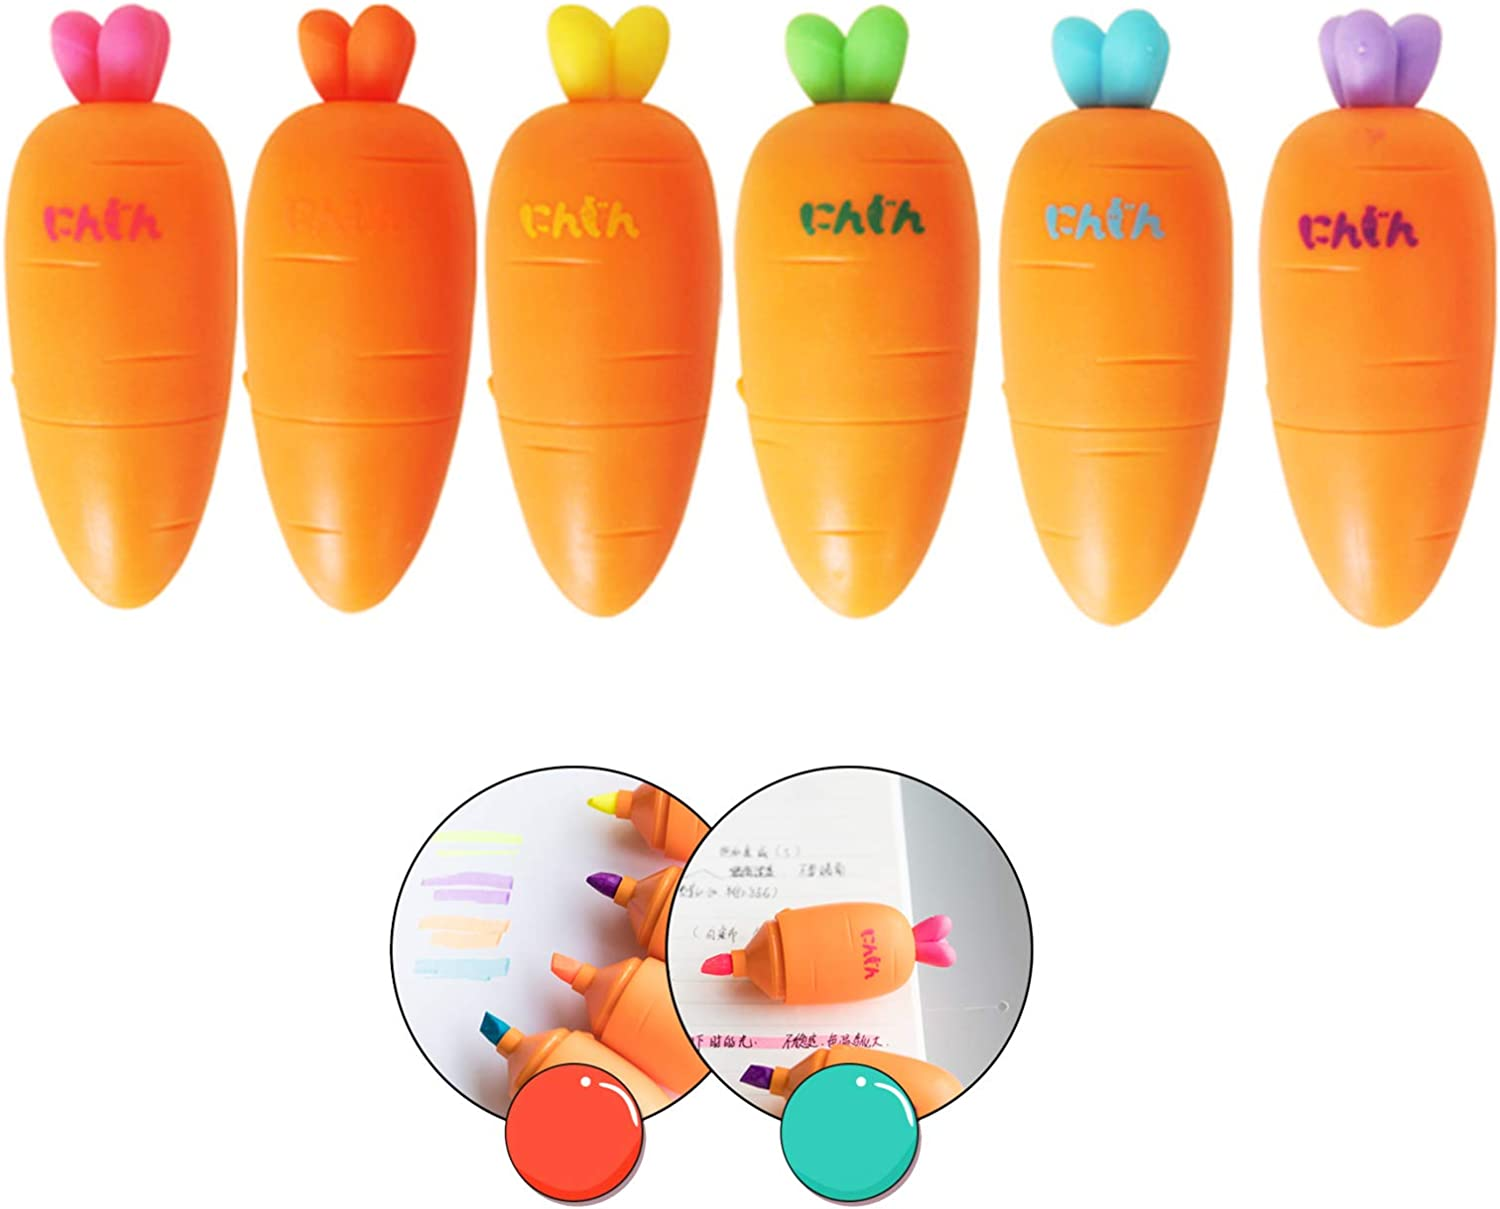 eKoi Cute Kawaii Creative Korean Novelty Non Bleed Mini Carrot Highlighter Pen Marker for School Student Office Kids Play Study Stationery Supplies (6 Assorted Color Pack) …